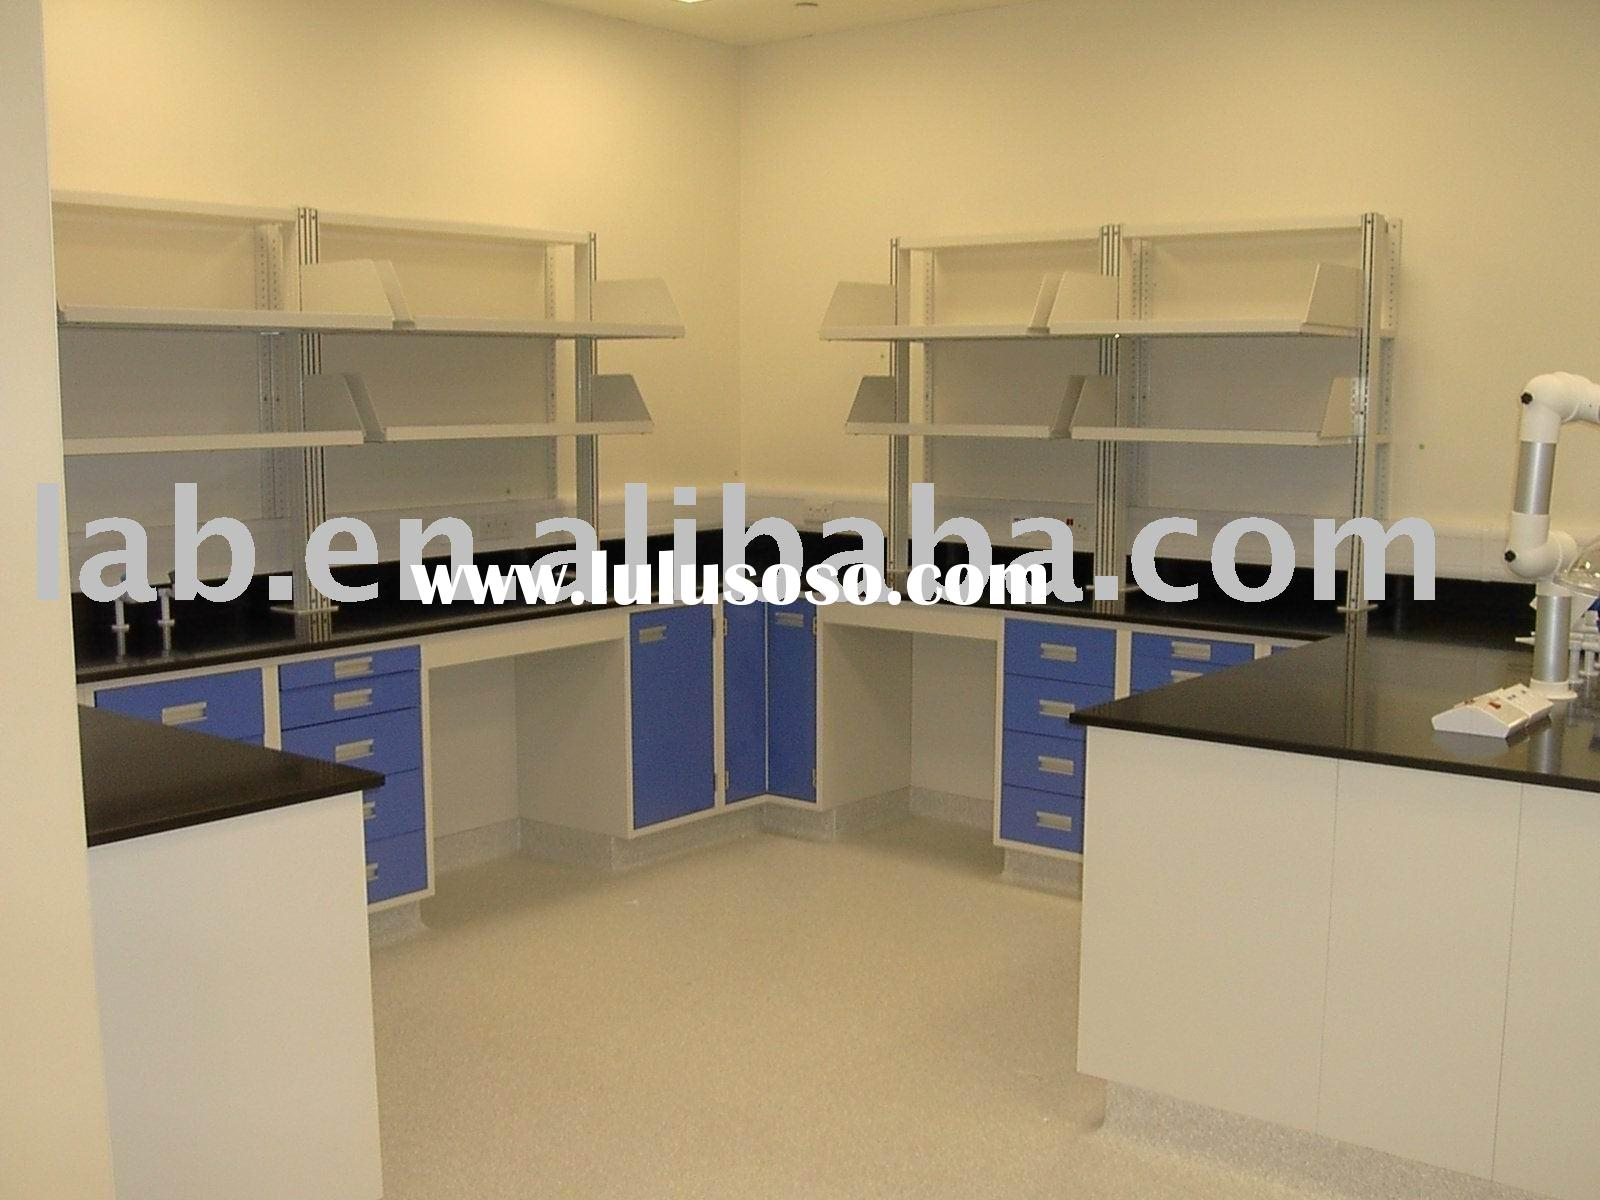 laboratory furniture,lab equipment,lab cabinet,lab bench ,wall bench ,central bench,school furniture